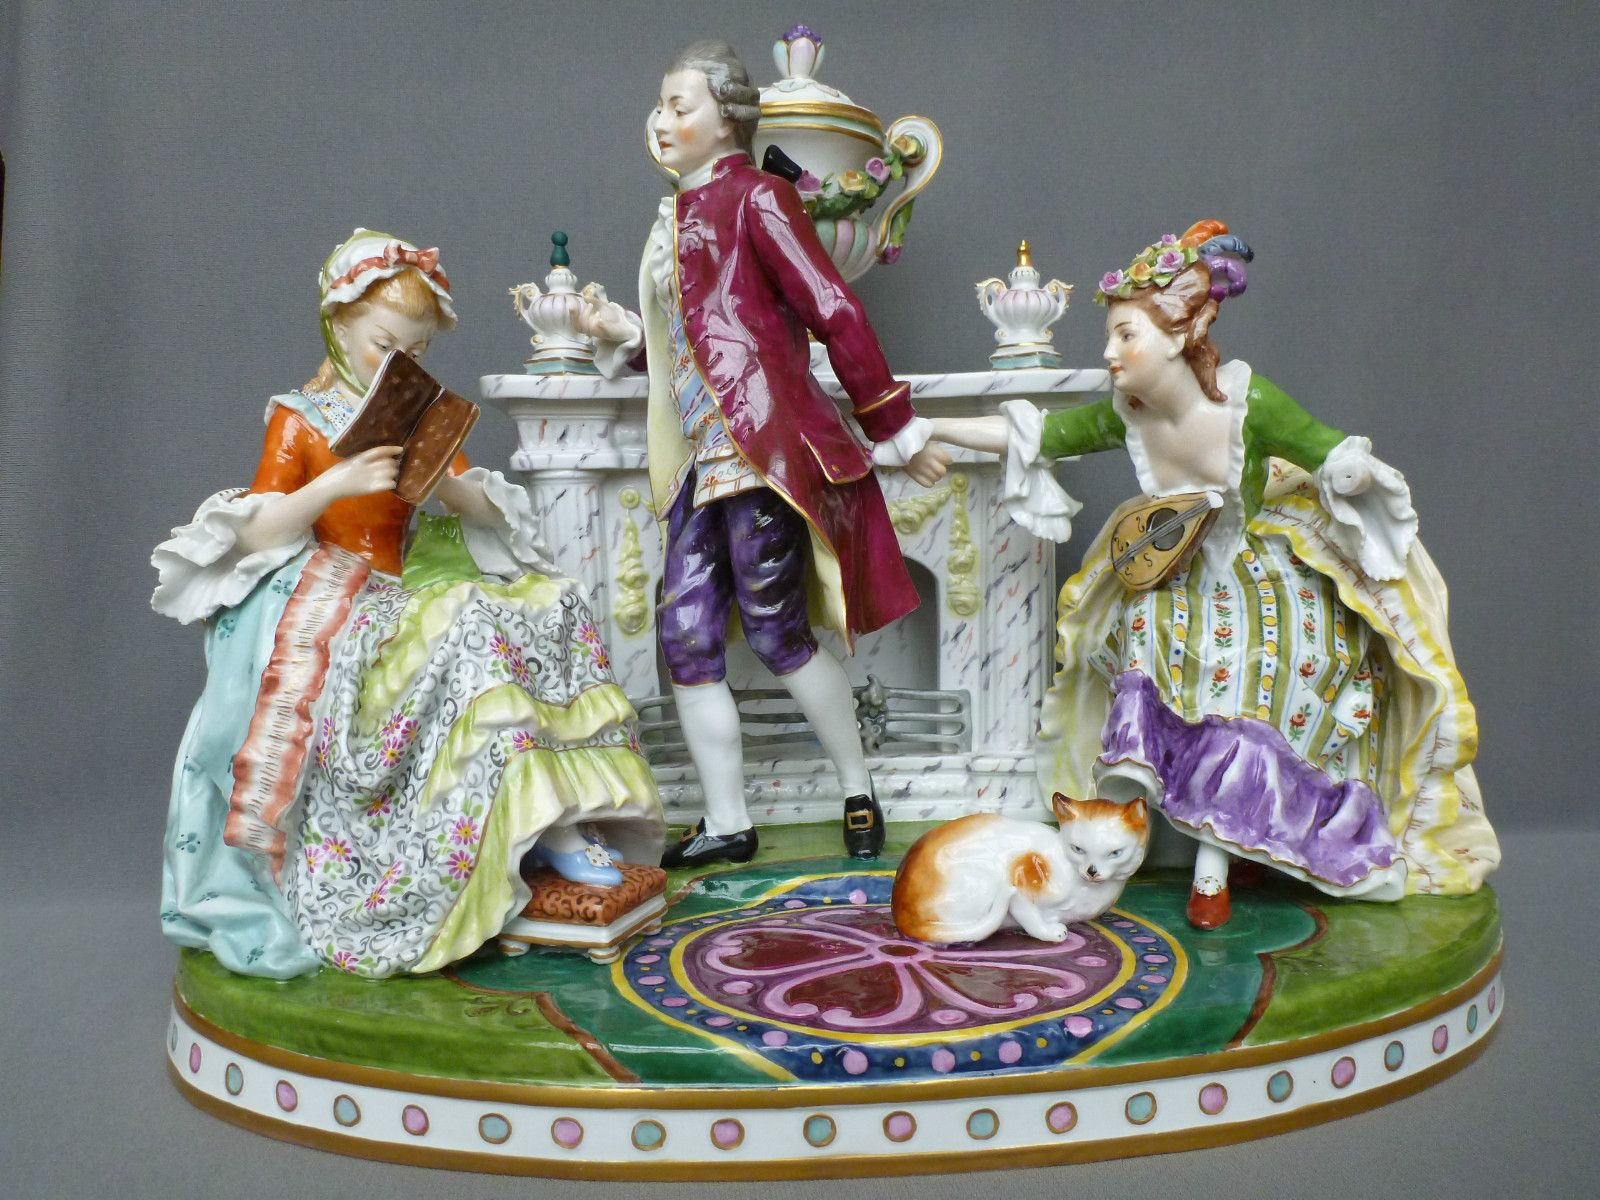 Rare Antique German Porcelain Group Figure Dresden